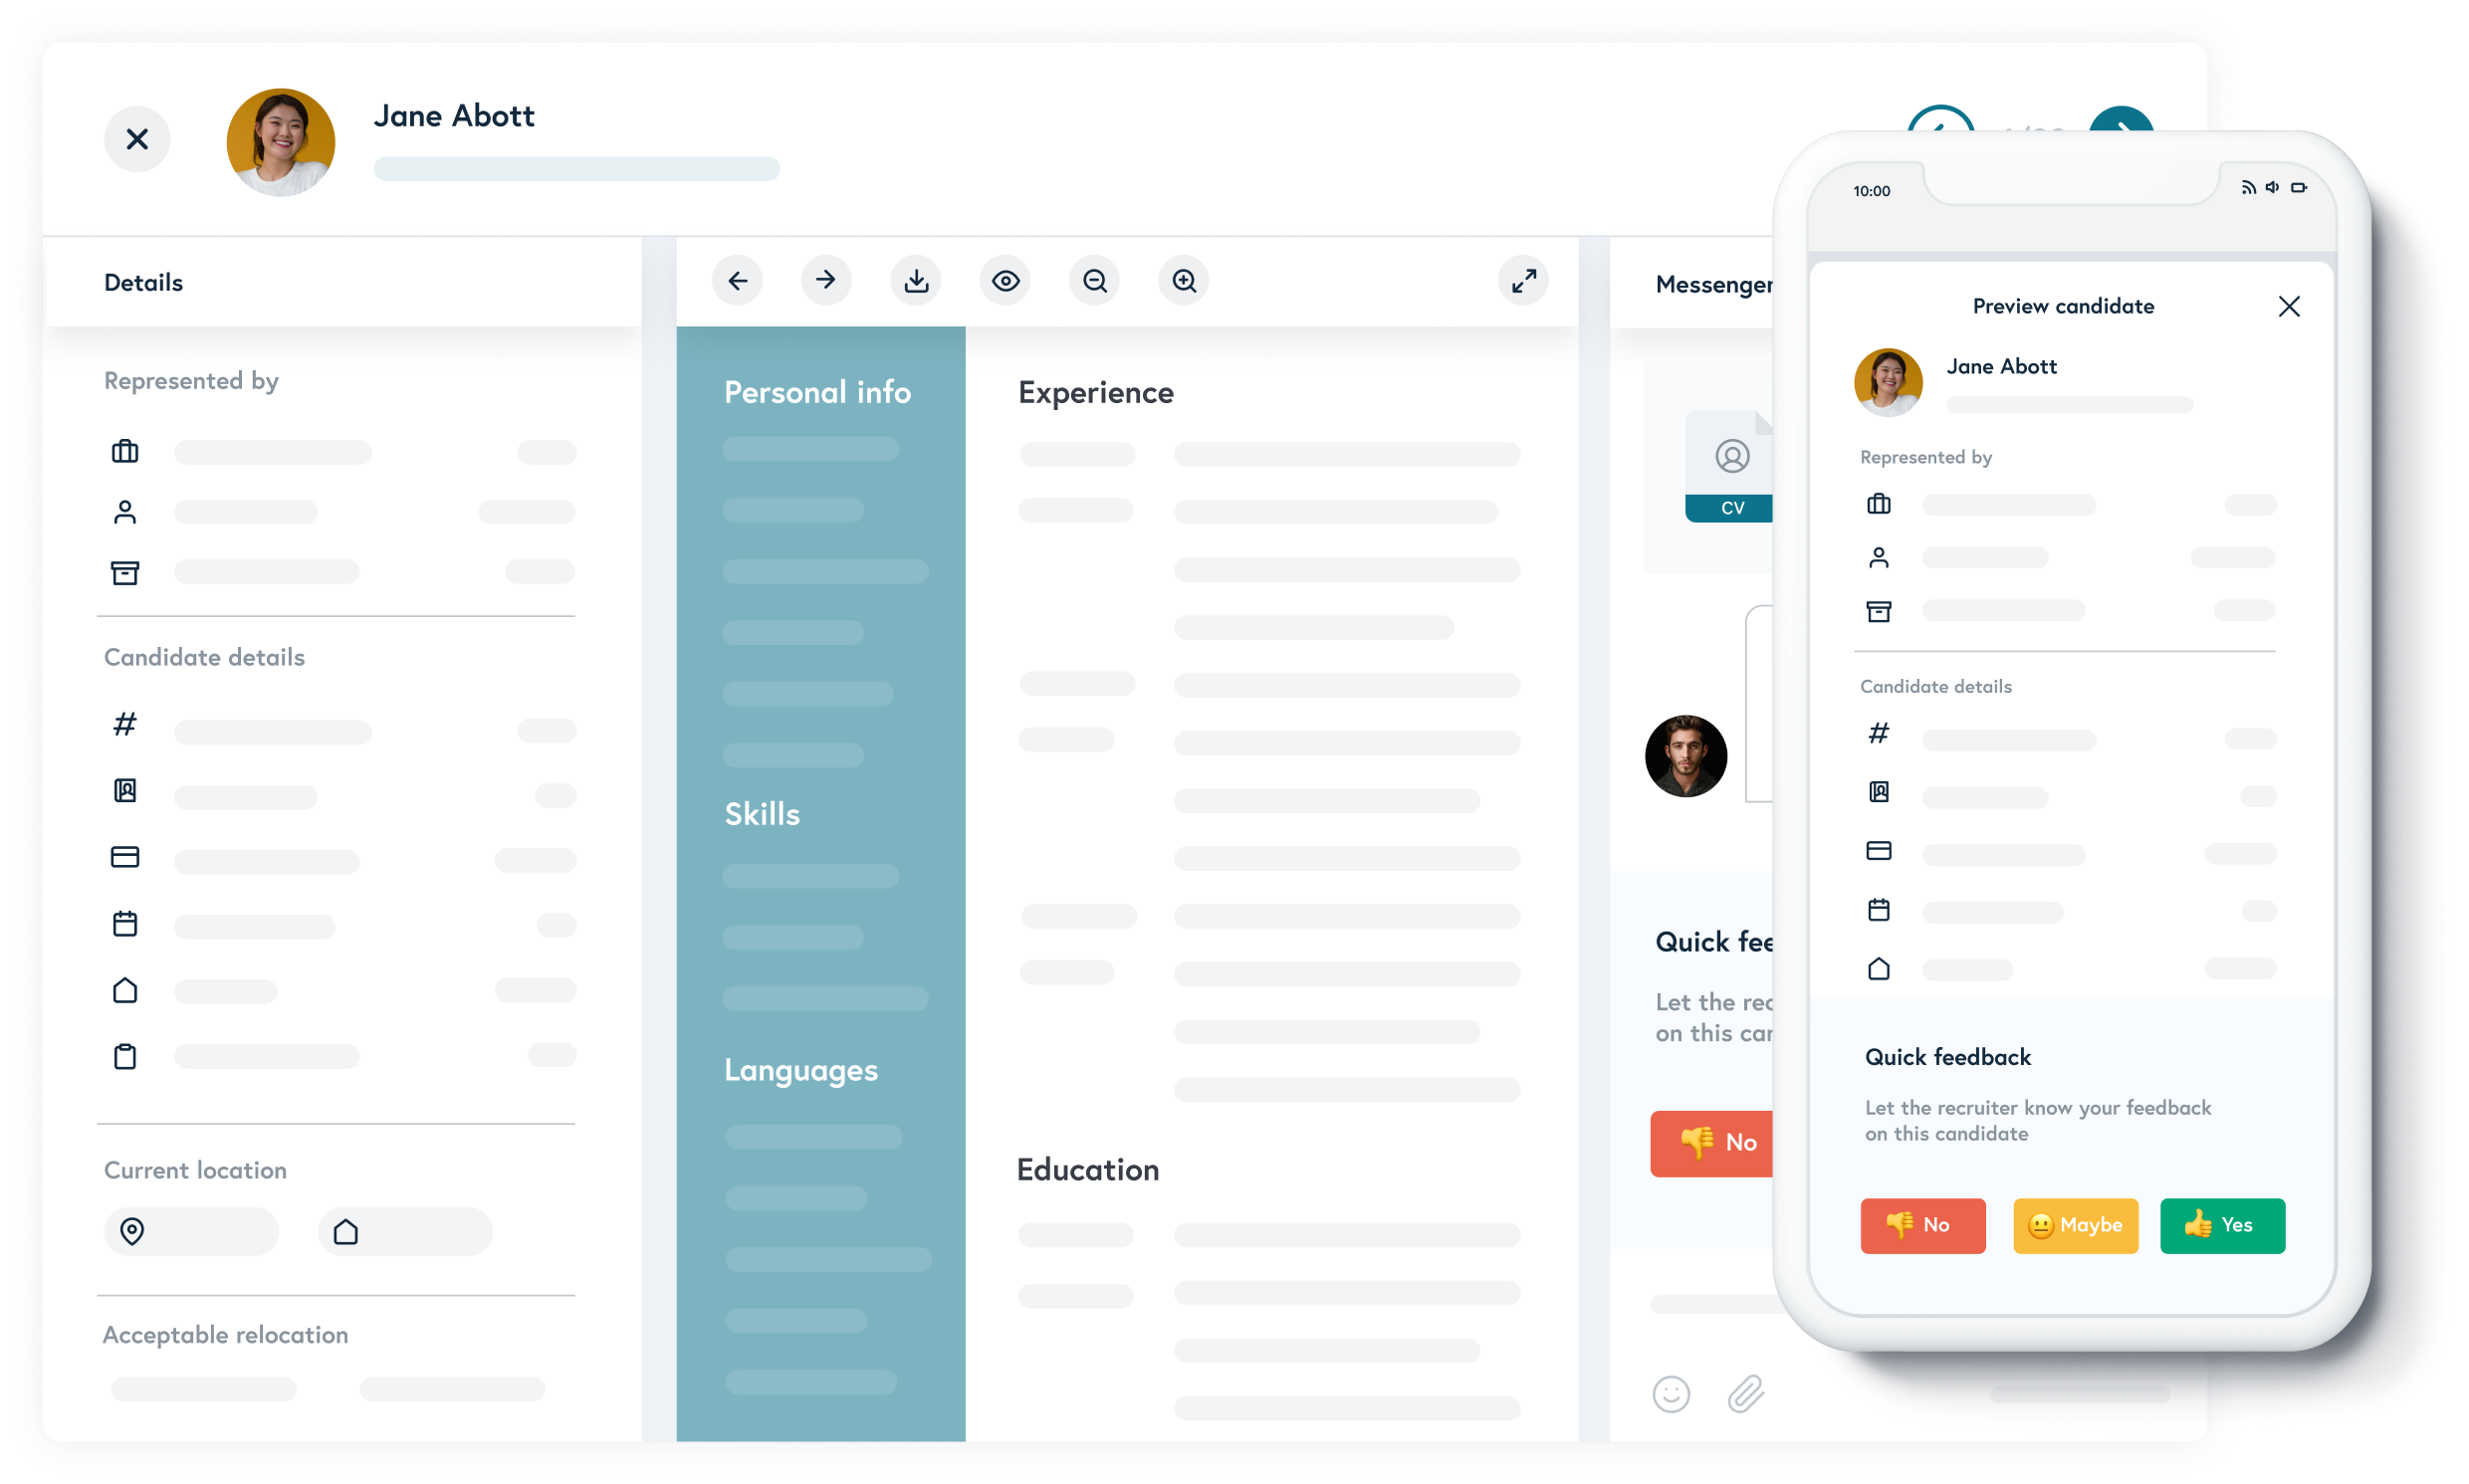 Candidates profile. Get feedback and chat with your client